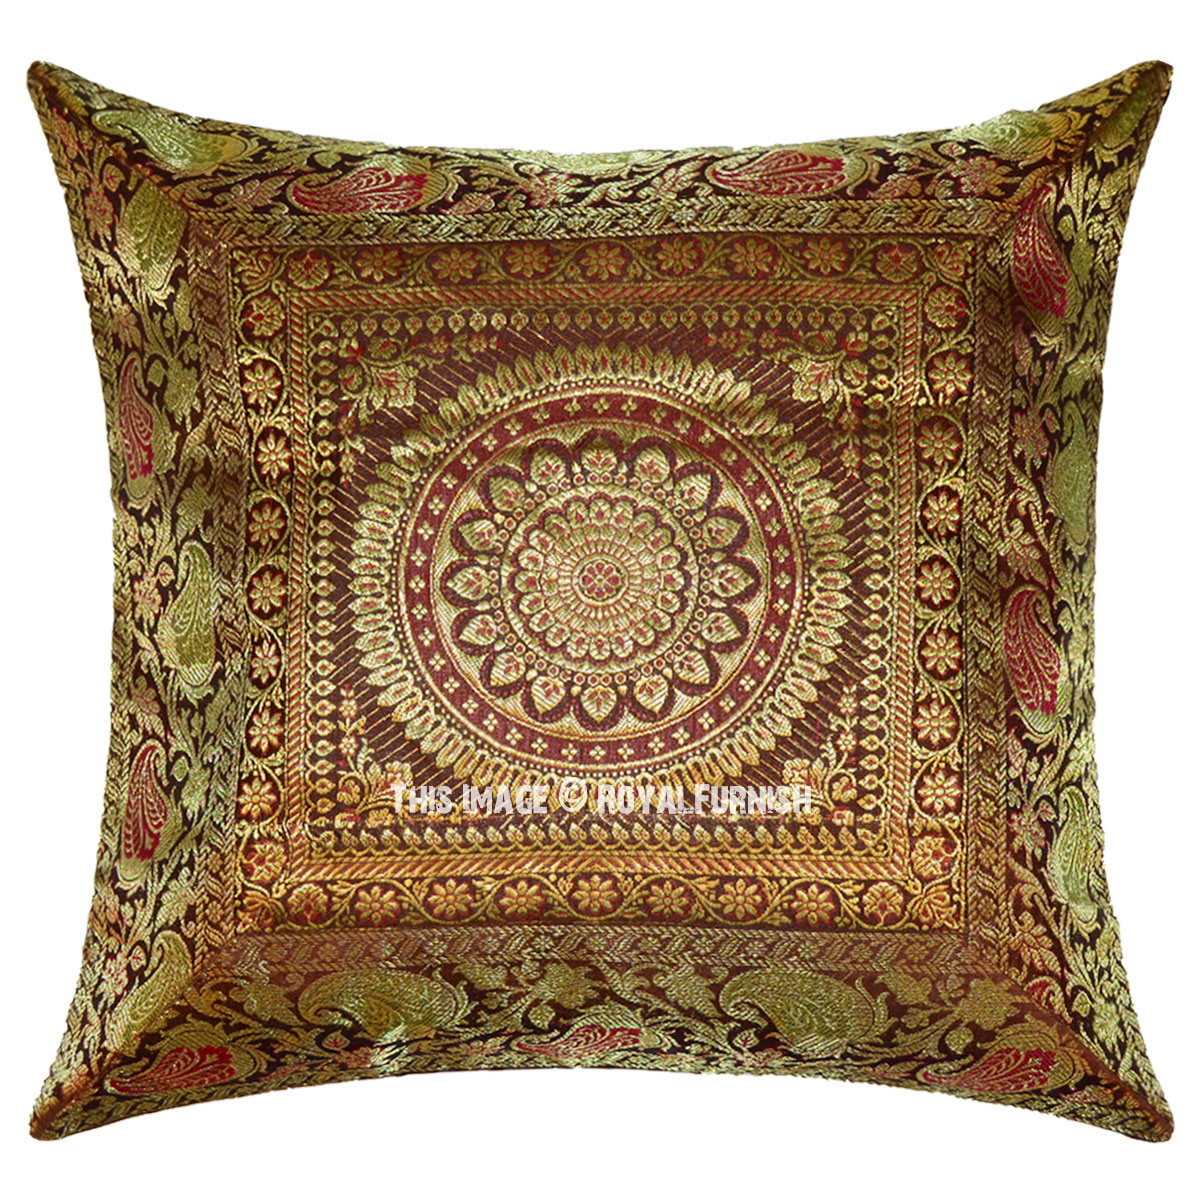 16x16 Inch Decorative Mandala Brown Silk Brocade Throw